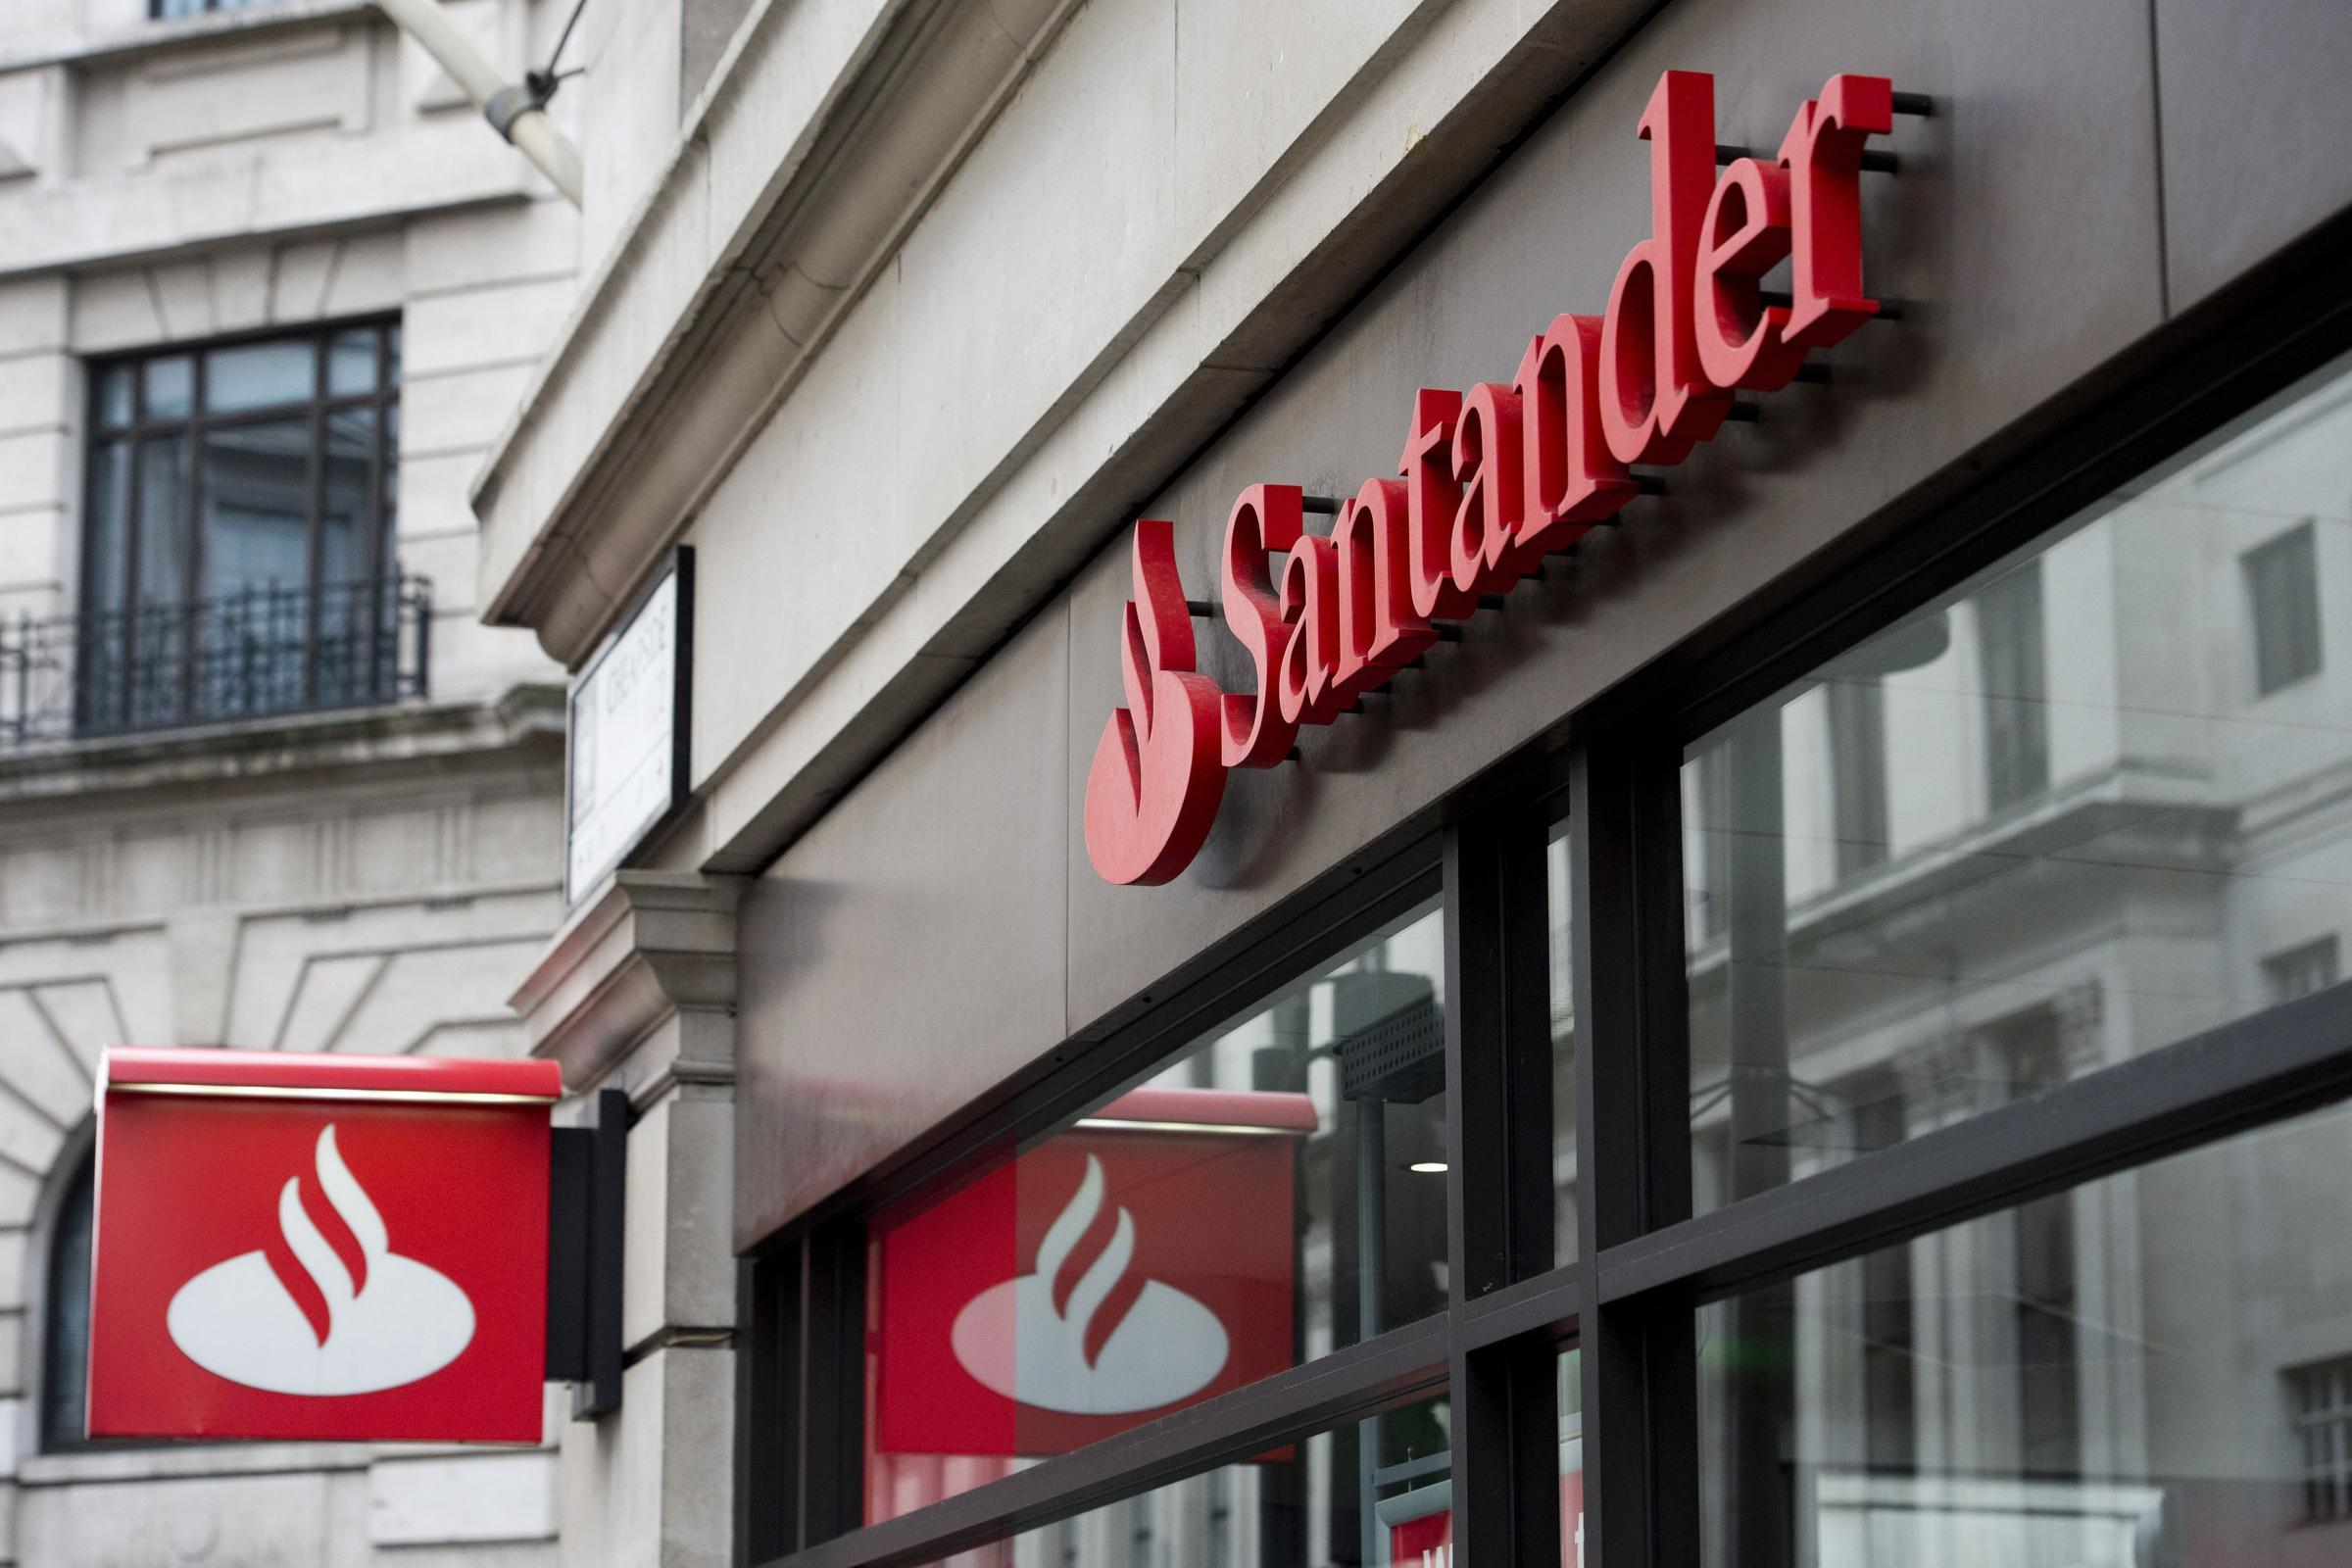 Jobs at risk as Santander set to close in Troon